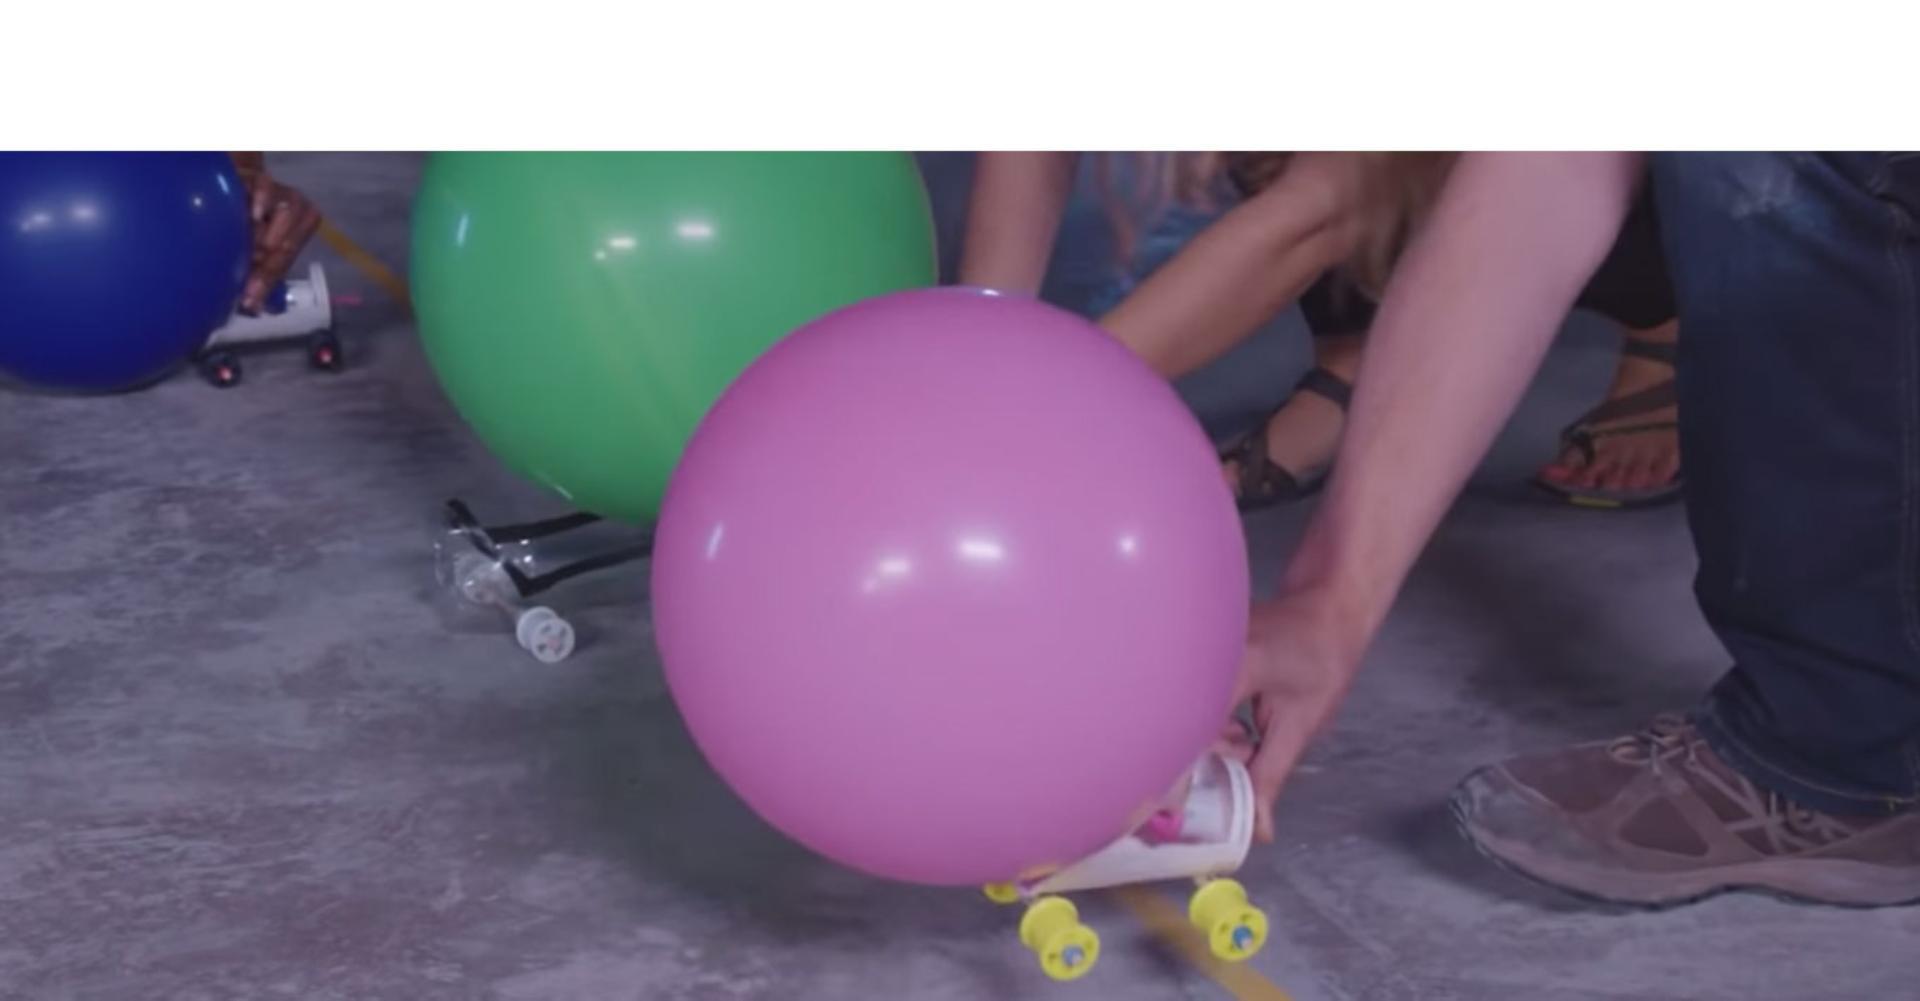 A Dyson engineer shows the balloon powered race car challenge.